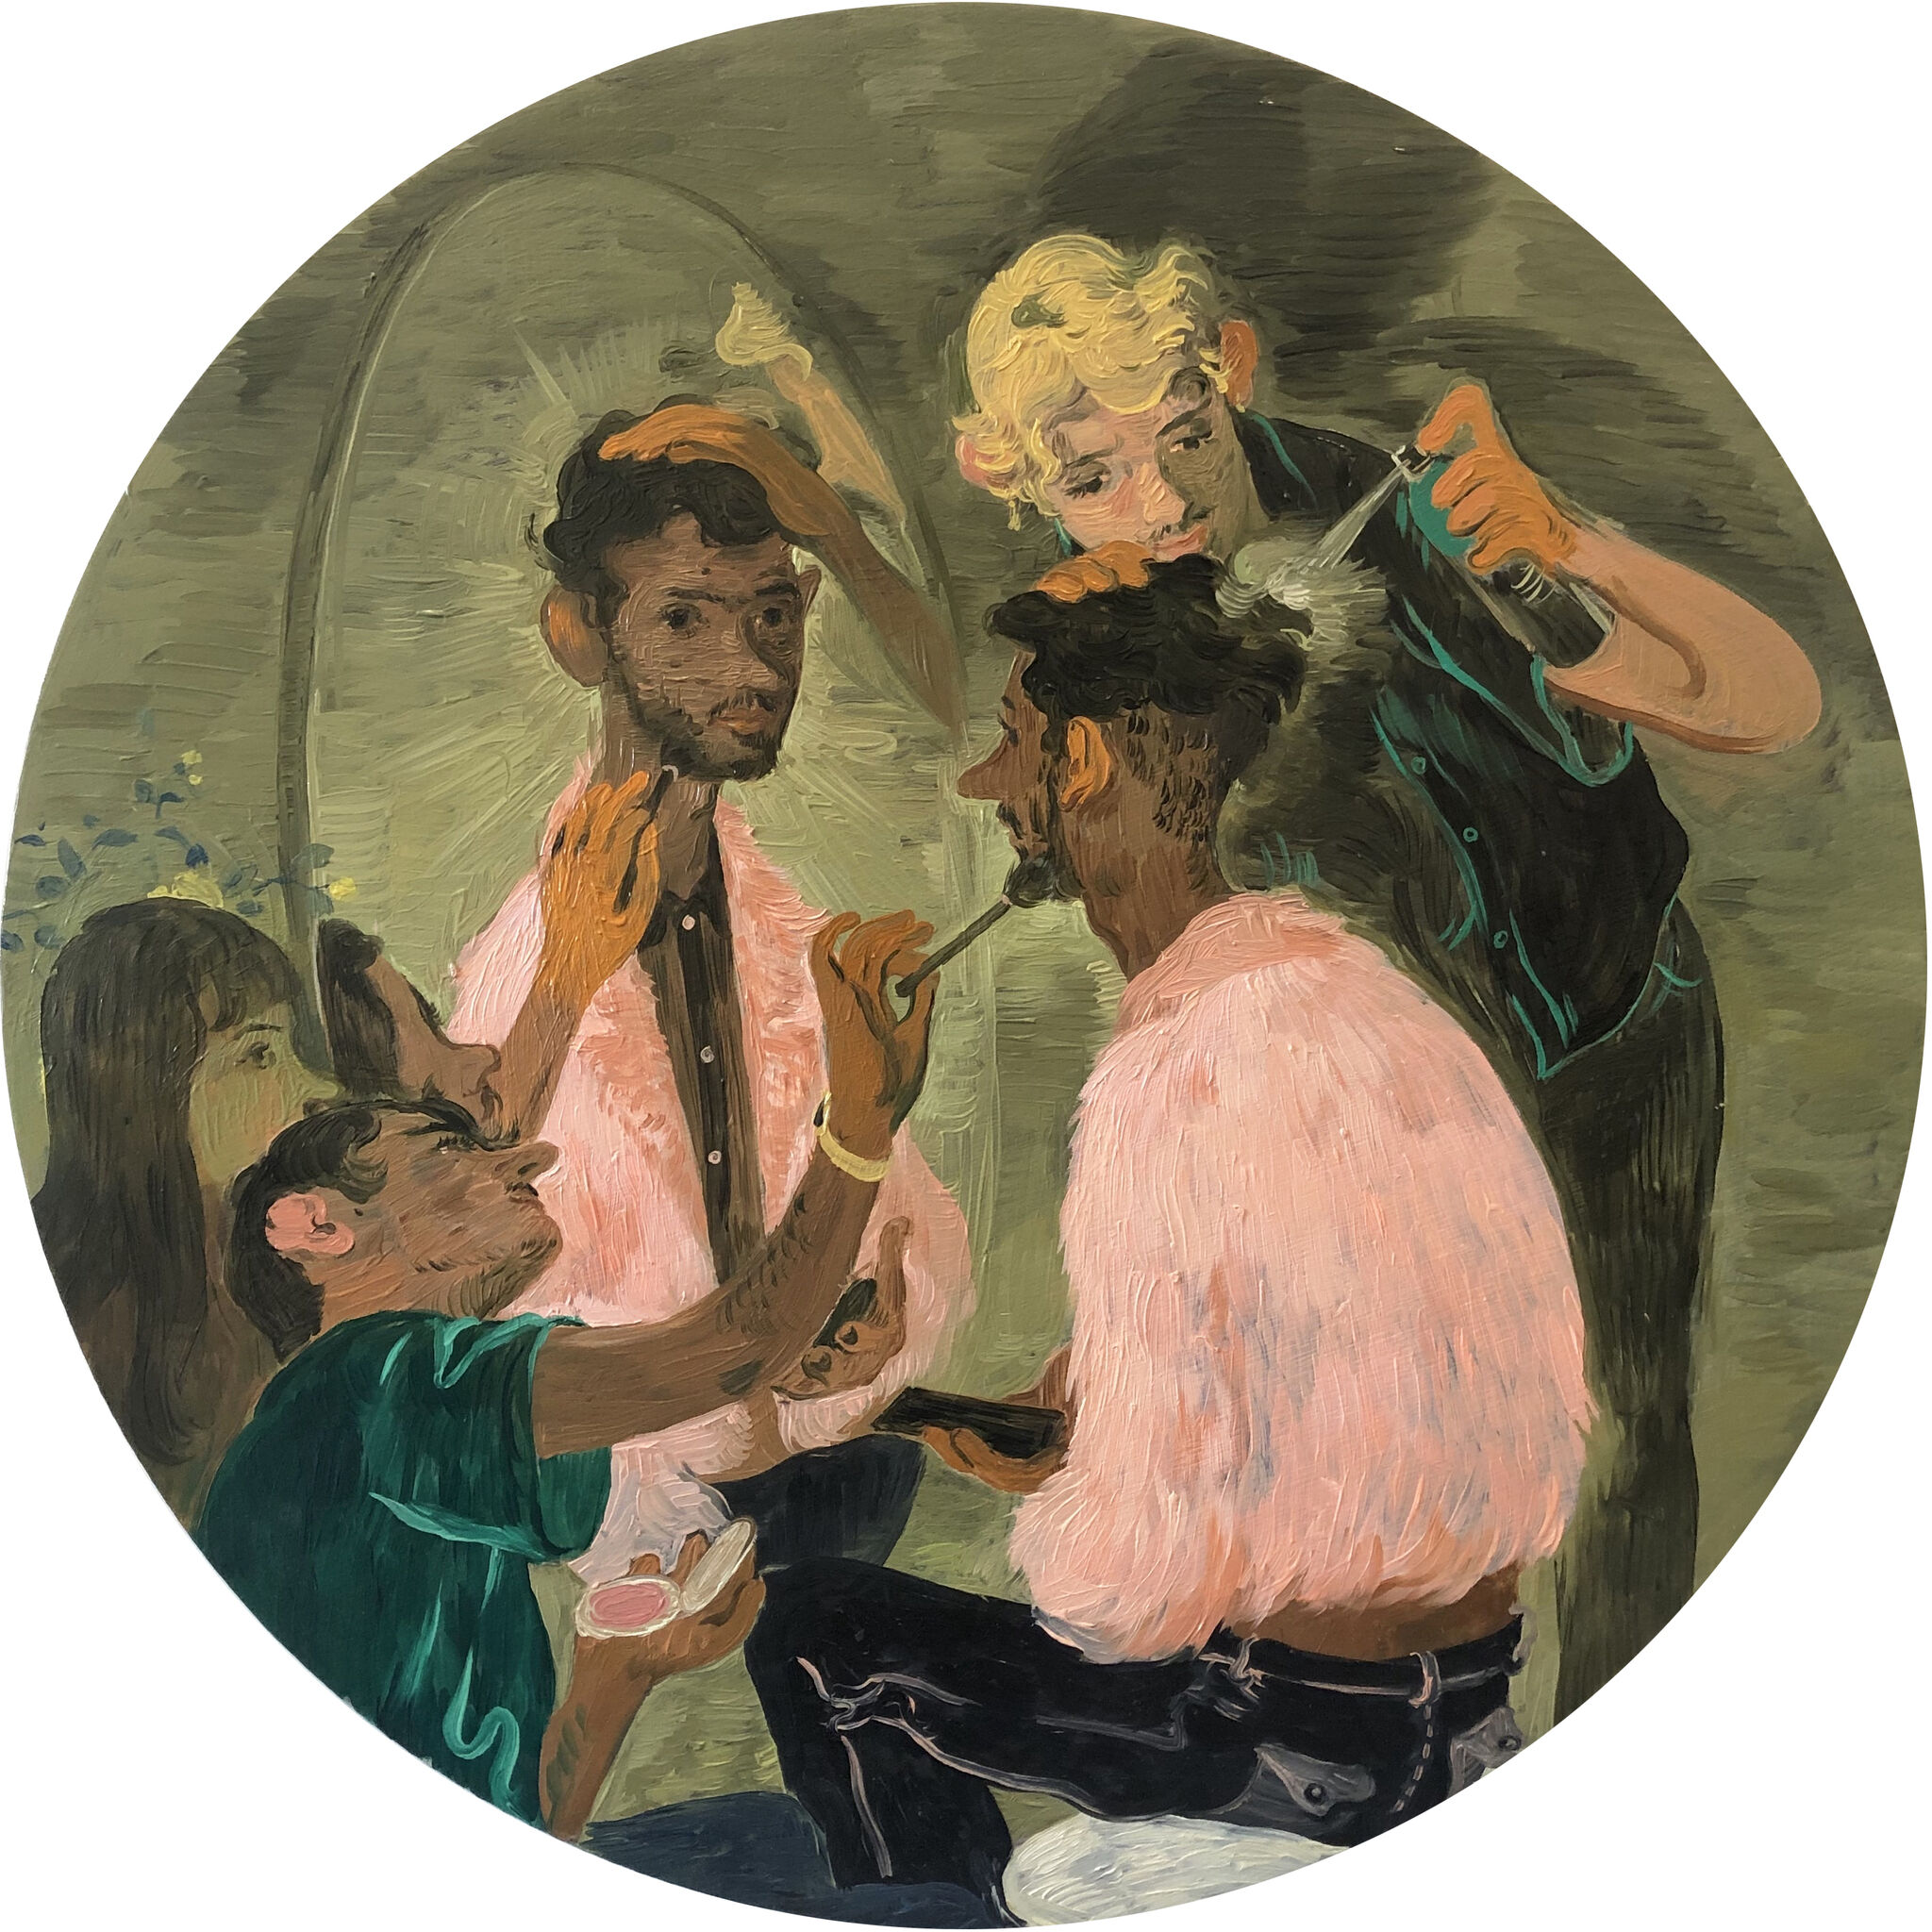 A team of three stylists putting makeup on a person wearing a pink coat and looking in a mirror